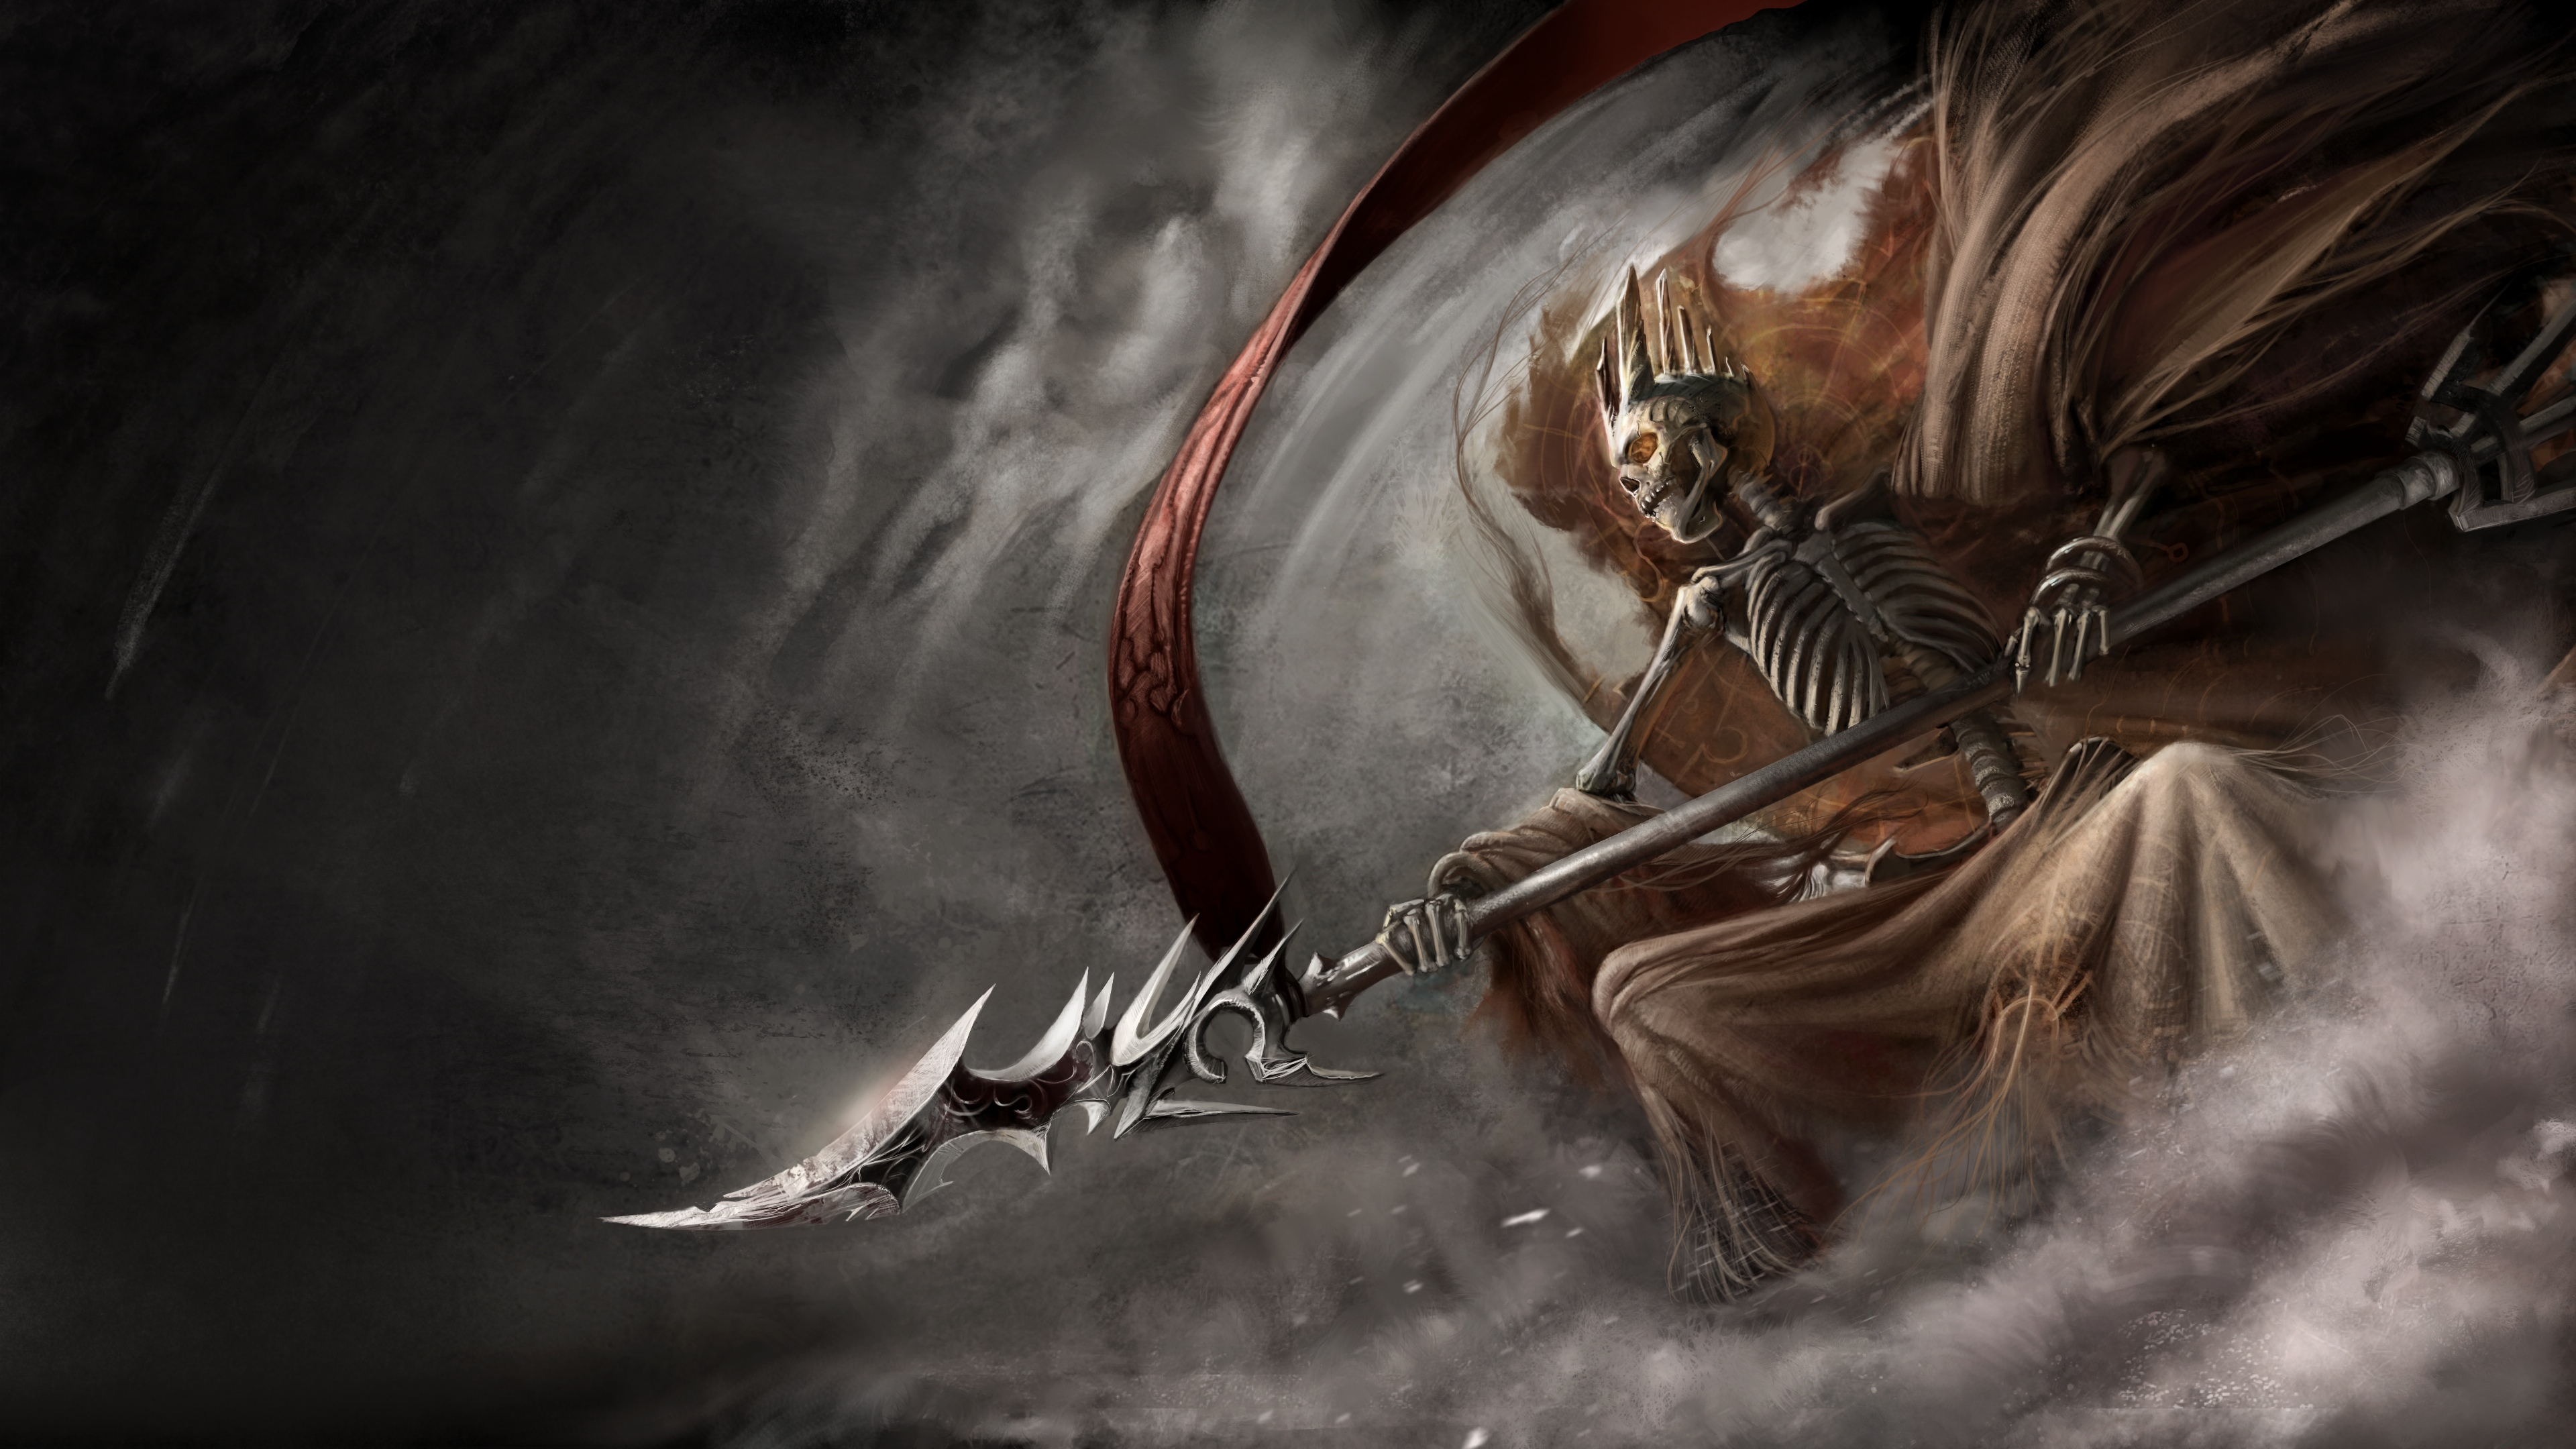 Free Download Dungeons And Dragons Concept Art 1 Wallpaper